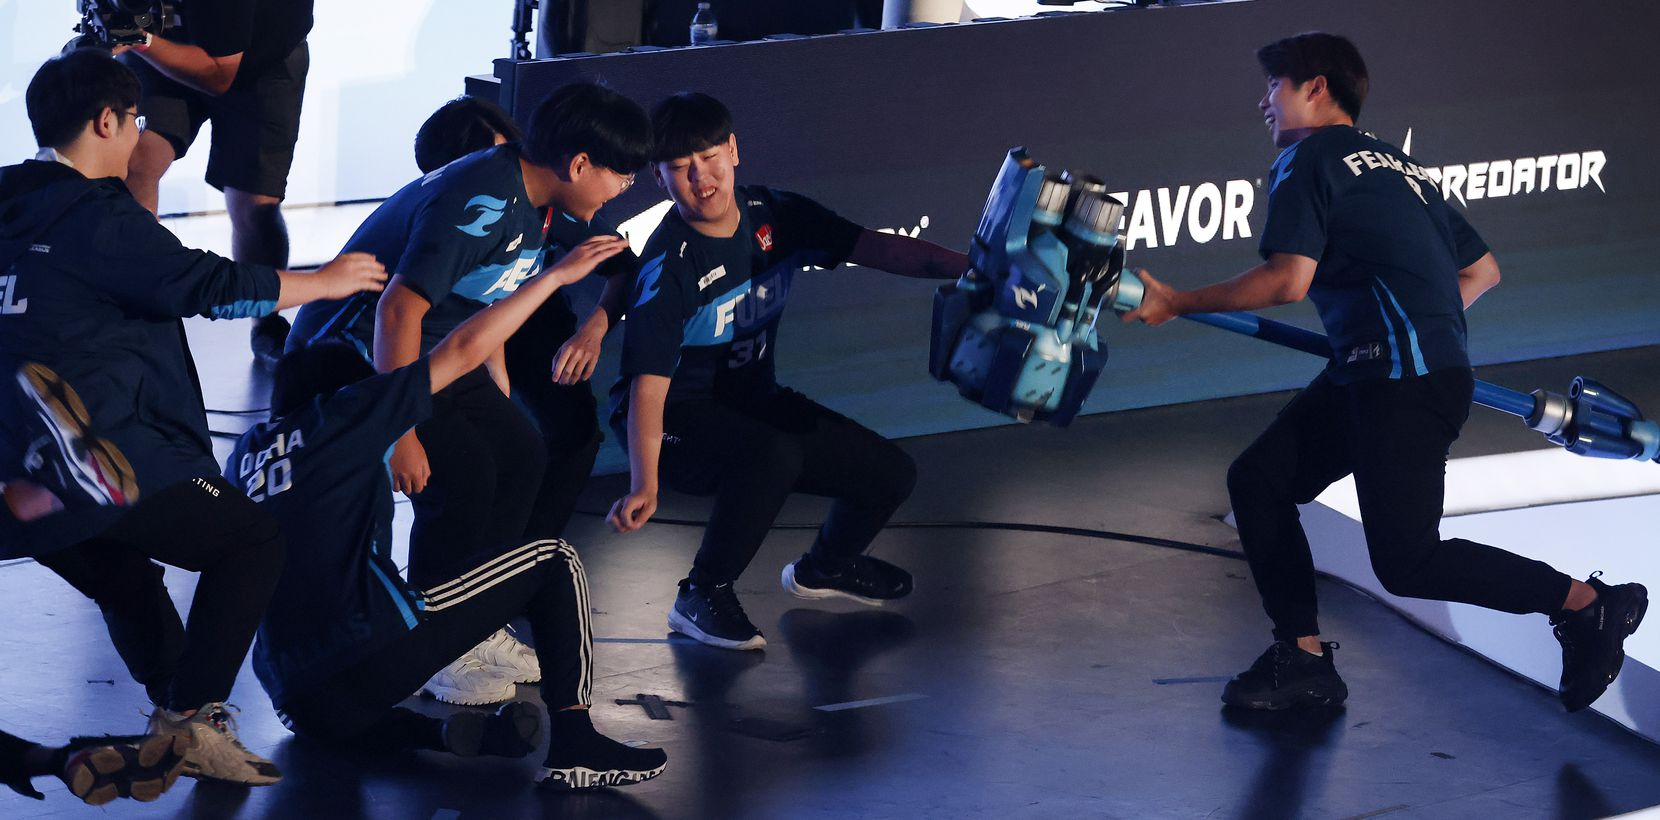 Dallas Fuel player Fearless (right) slams Reinhardt's hammer, knocking over his teammates during their Overwatch League introductions at Esports Stadium Arlington Friday, July 9, 2021. Dallas Fuel defeated the Houston Outlaws in The Battle for Texas, 3-0. It was the first in-person live competition for fans in over a year. Houston competed from their hometown. (Tom Fox/The Dallas Morning News)